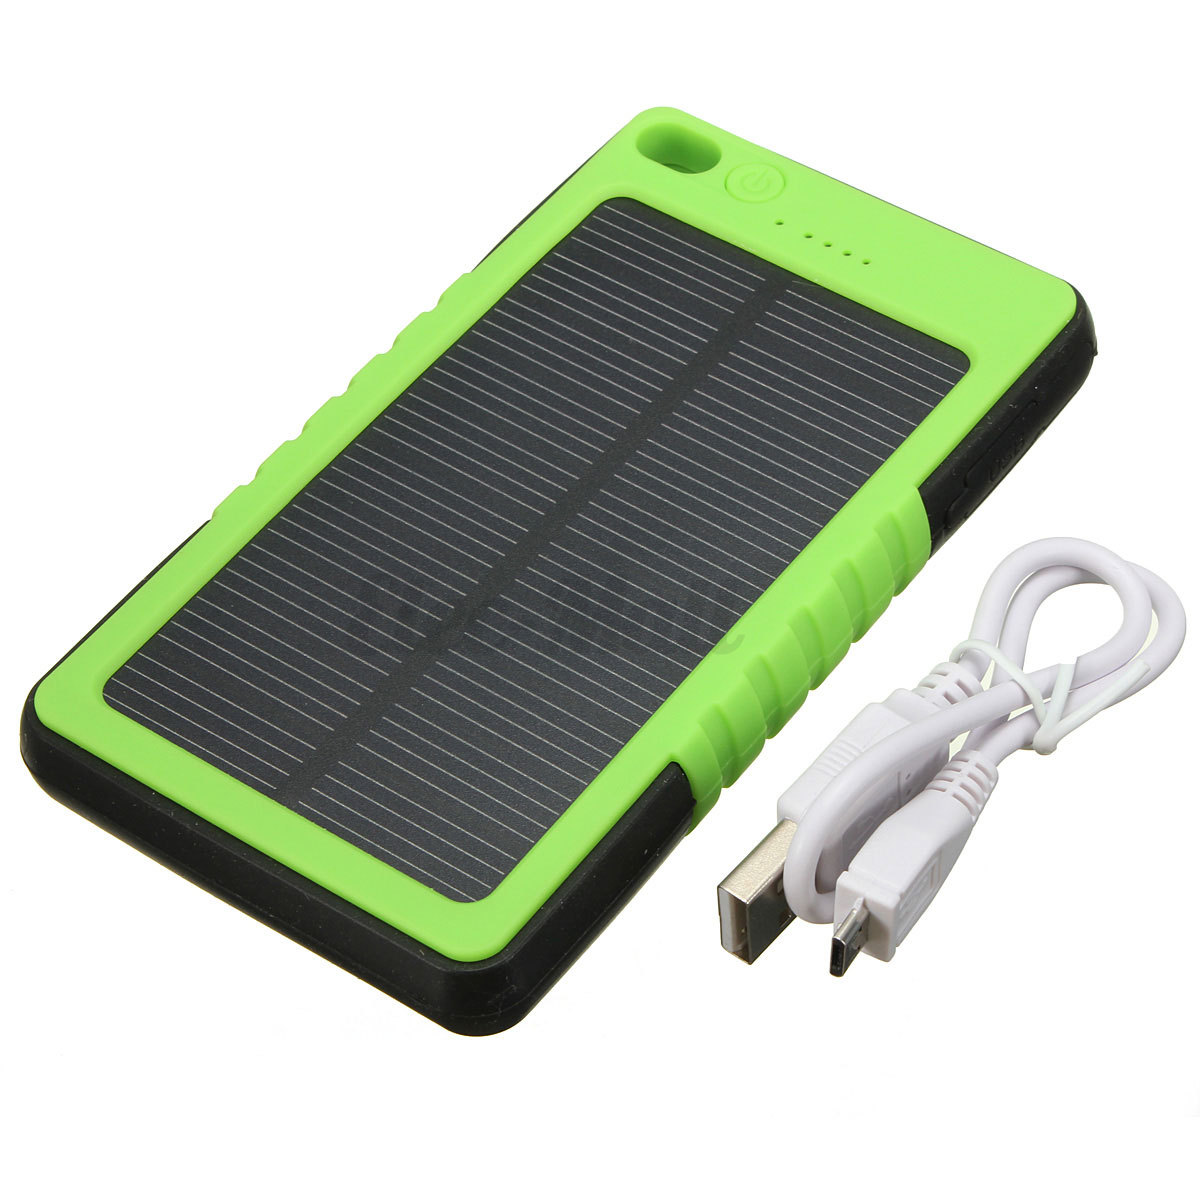 8000ma etanche usb externe batterie chargeur led solaire power bank portable ebay. Black Bedroom Furniture Sets. Home Design Ideas